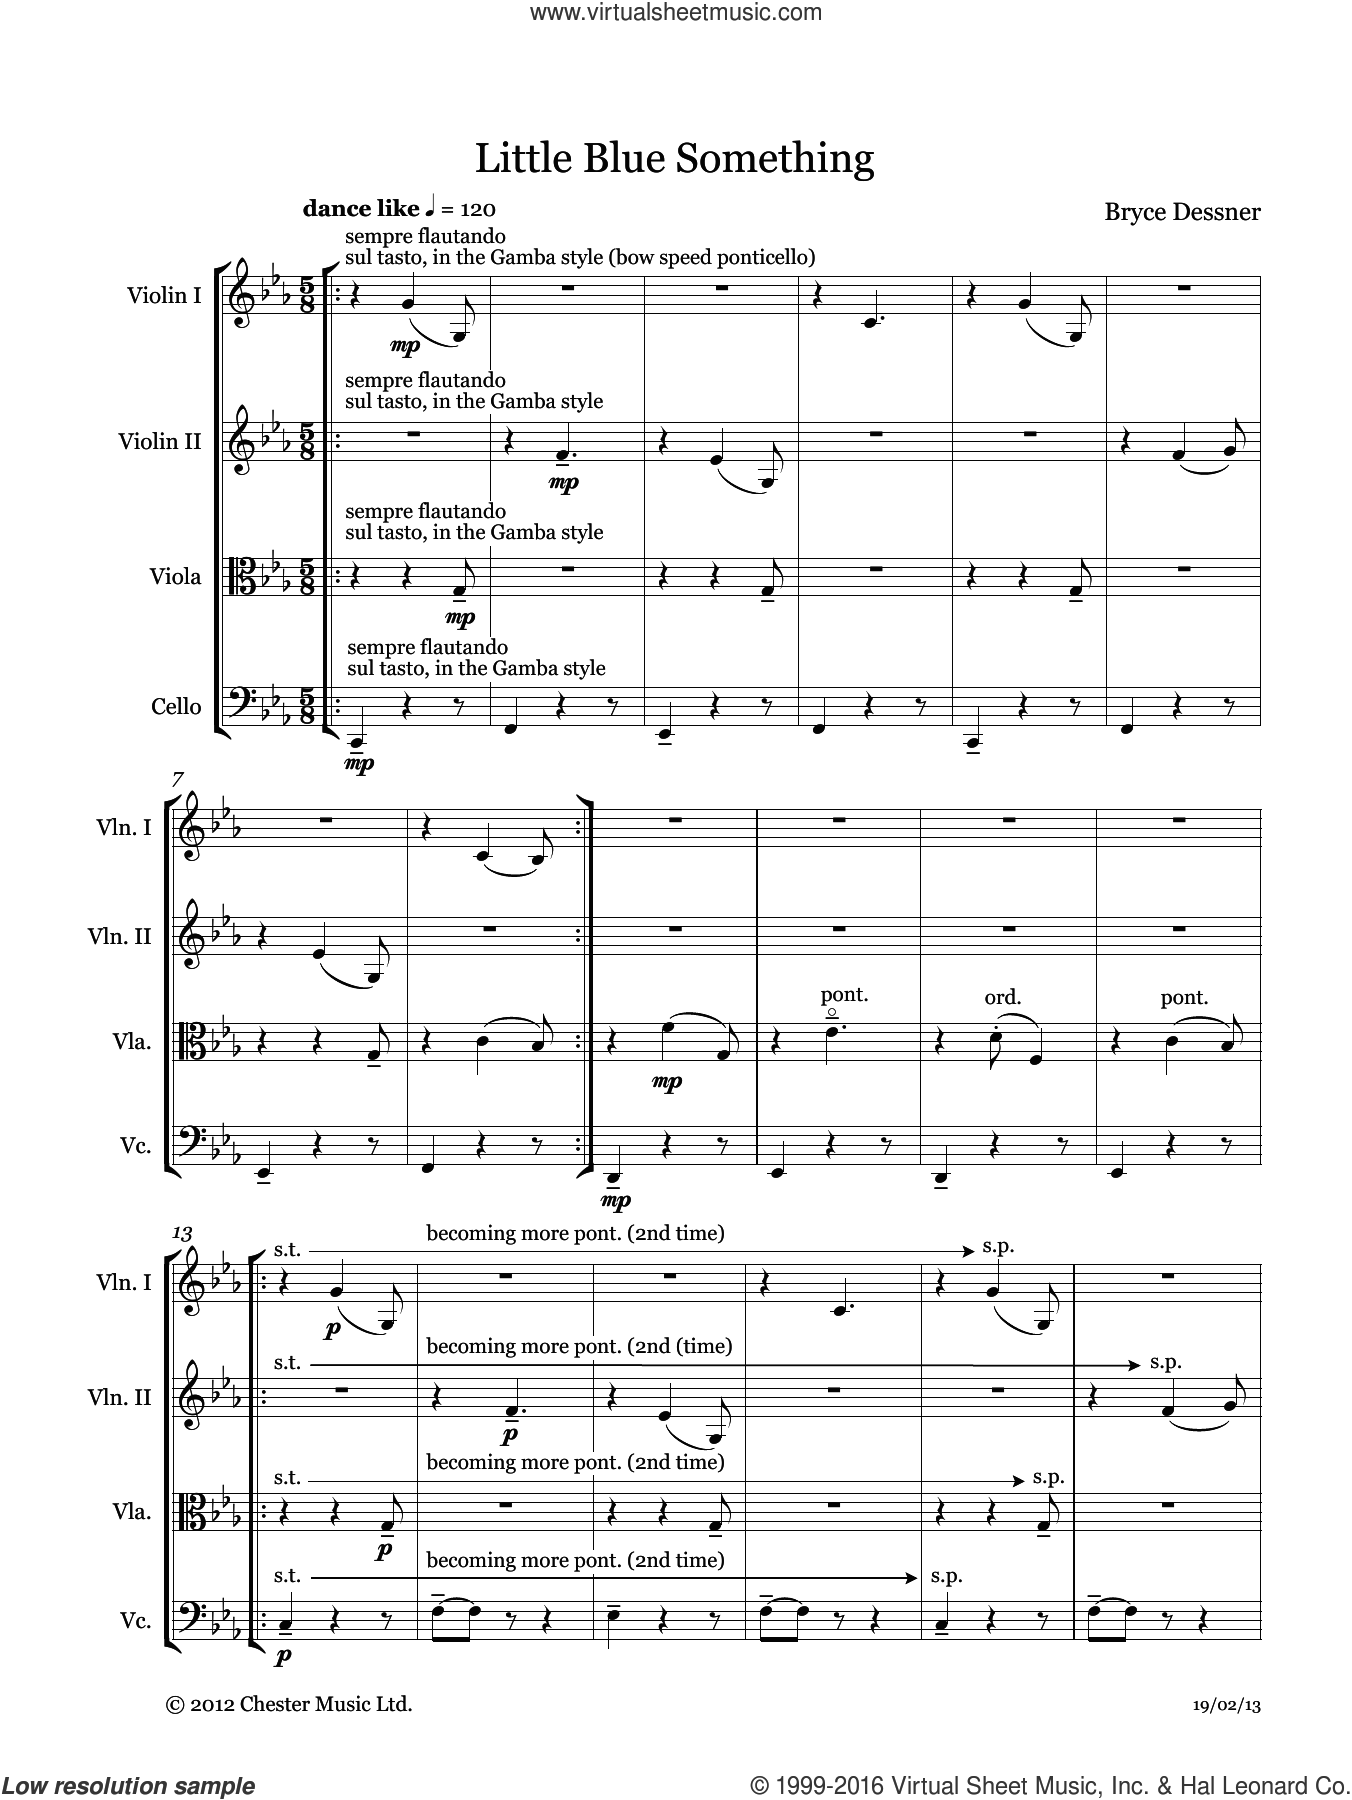 Little Blue Something (String quartet score and parts) sheet music for string orchestra by Bryce Dessner, classical score, intermediate skill level